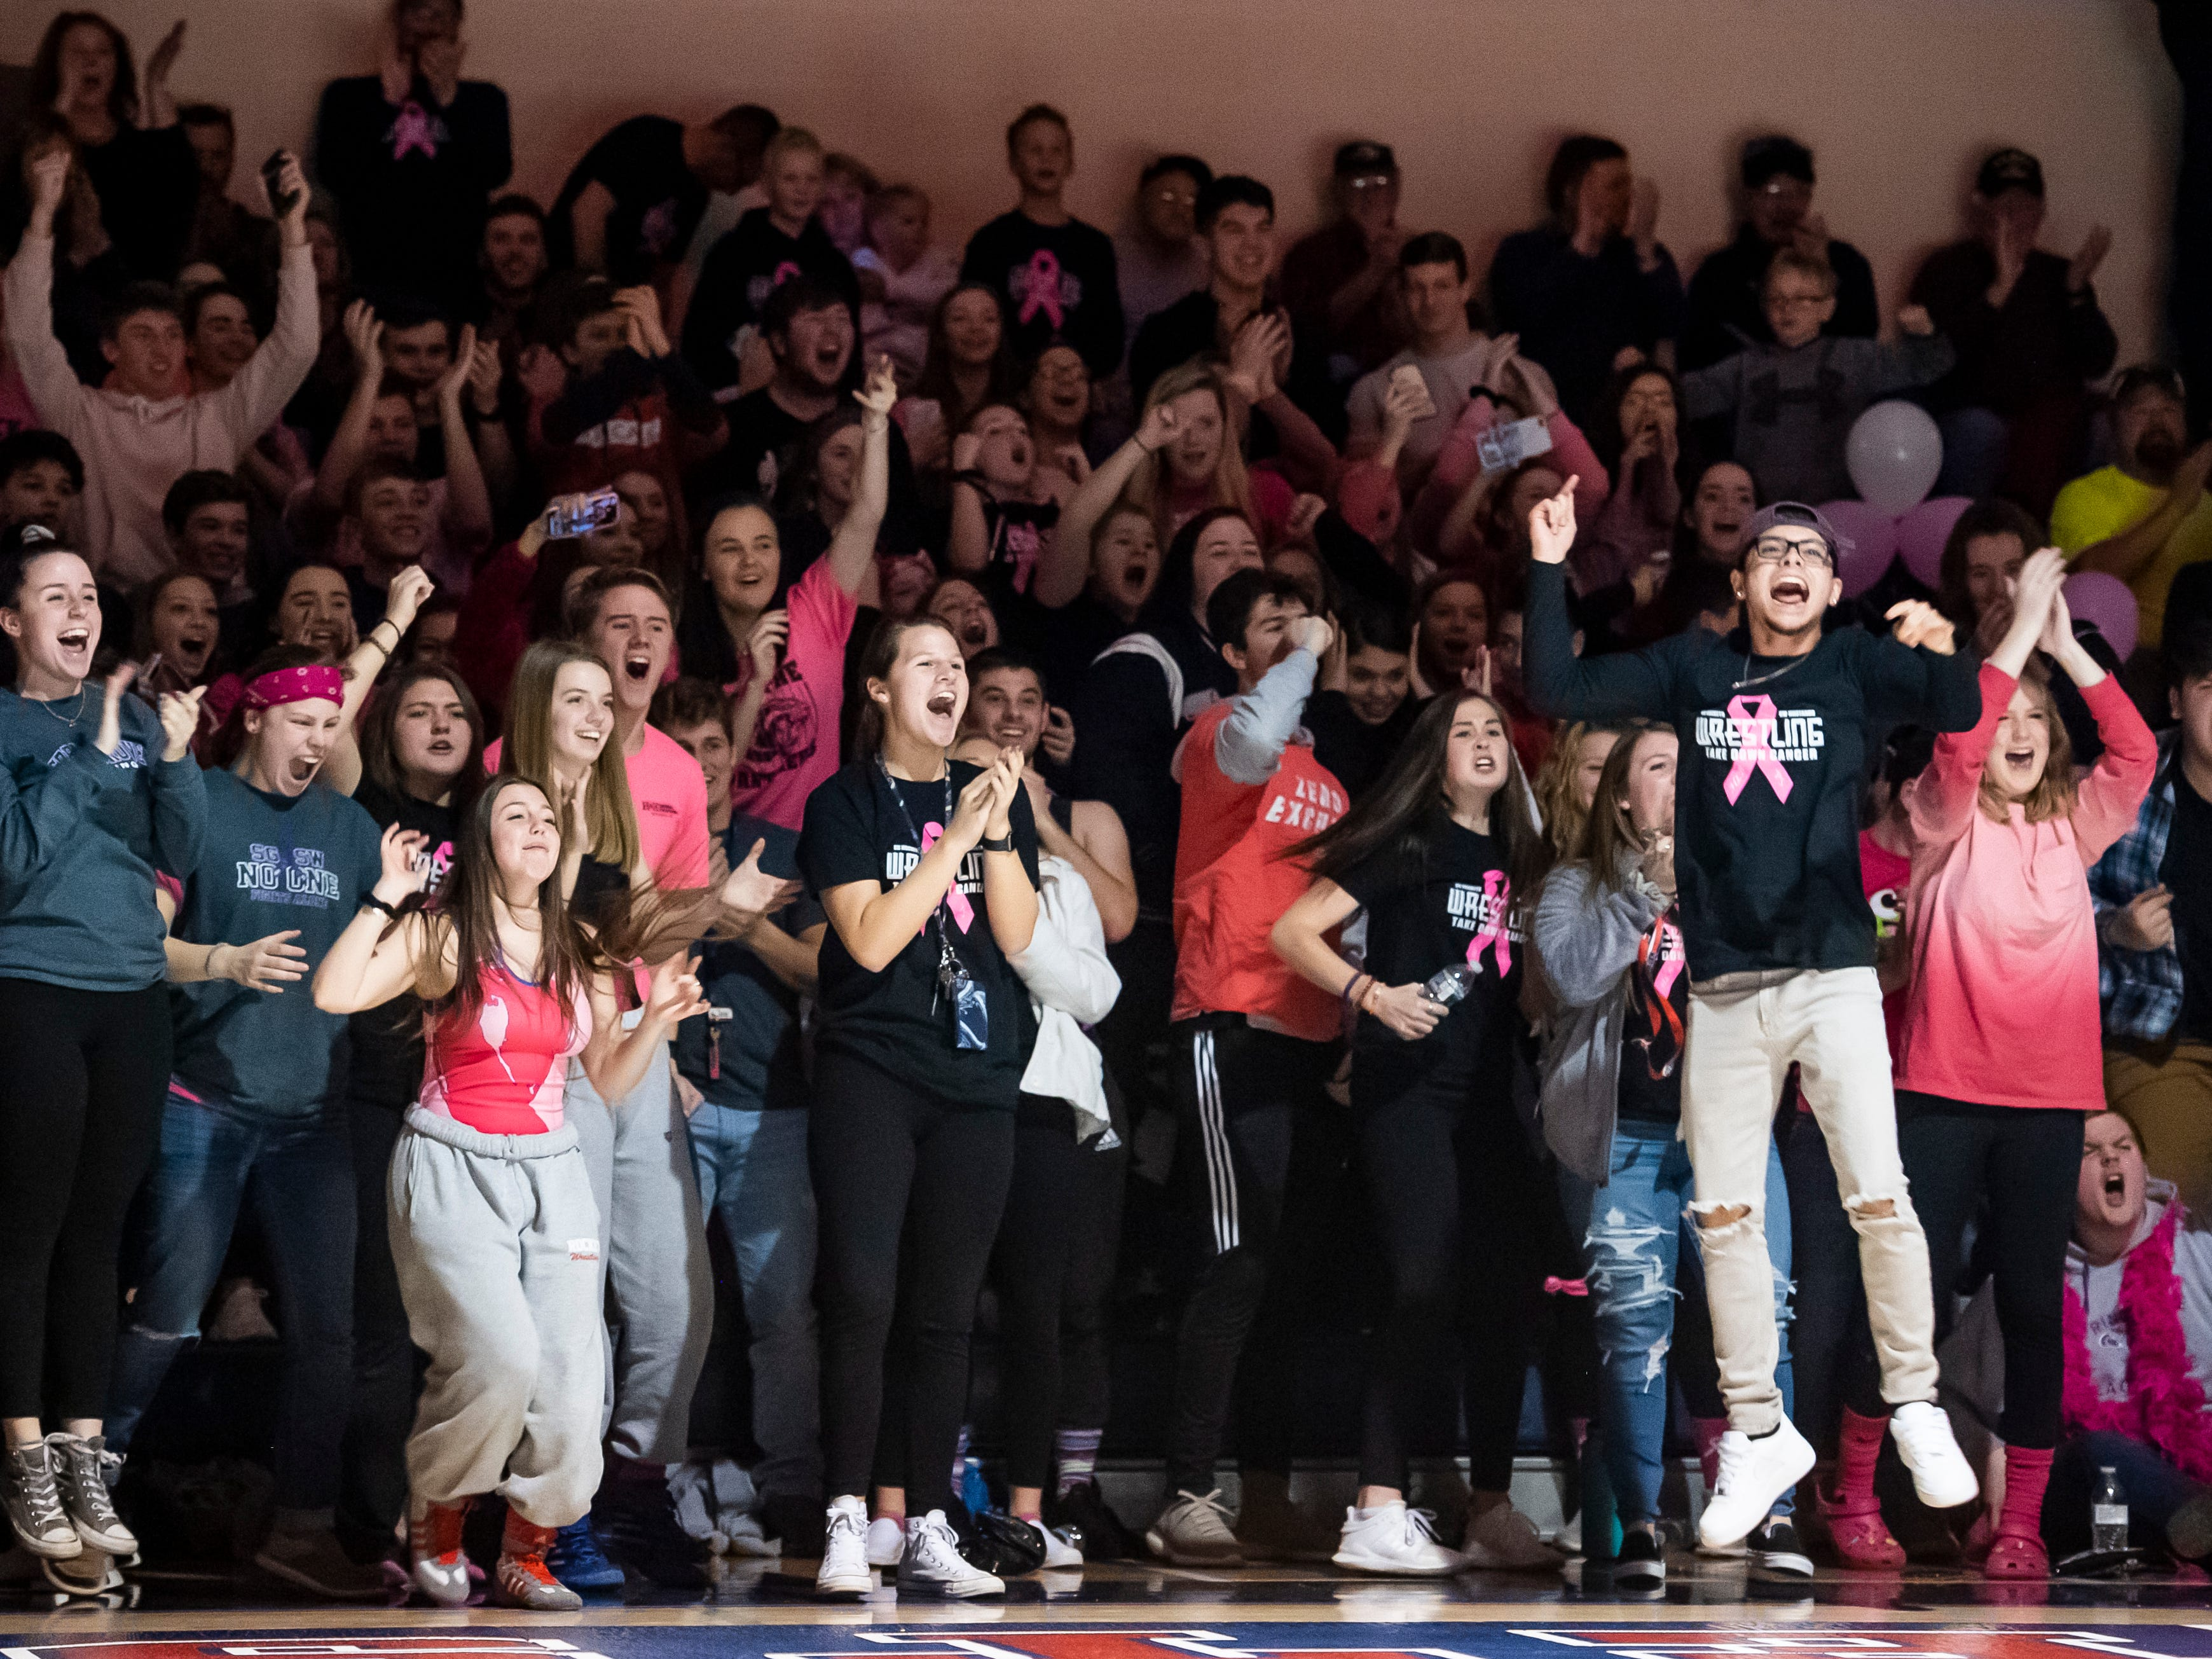 The Spring Grove student section erupts after Eric Glass pins South Western's Nathan Hawkins during the final bout (195 pounds) on Tuesday, Jan. 15, 2019. The pin gave Spring Grove the win 36-25 during the Rockets' annual 'Take Down Cancer' match, which raised $44,250 for the Heather L. Baker Foundation.